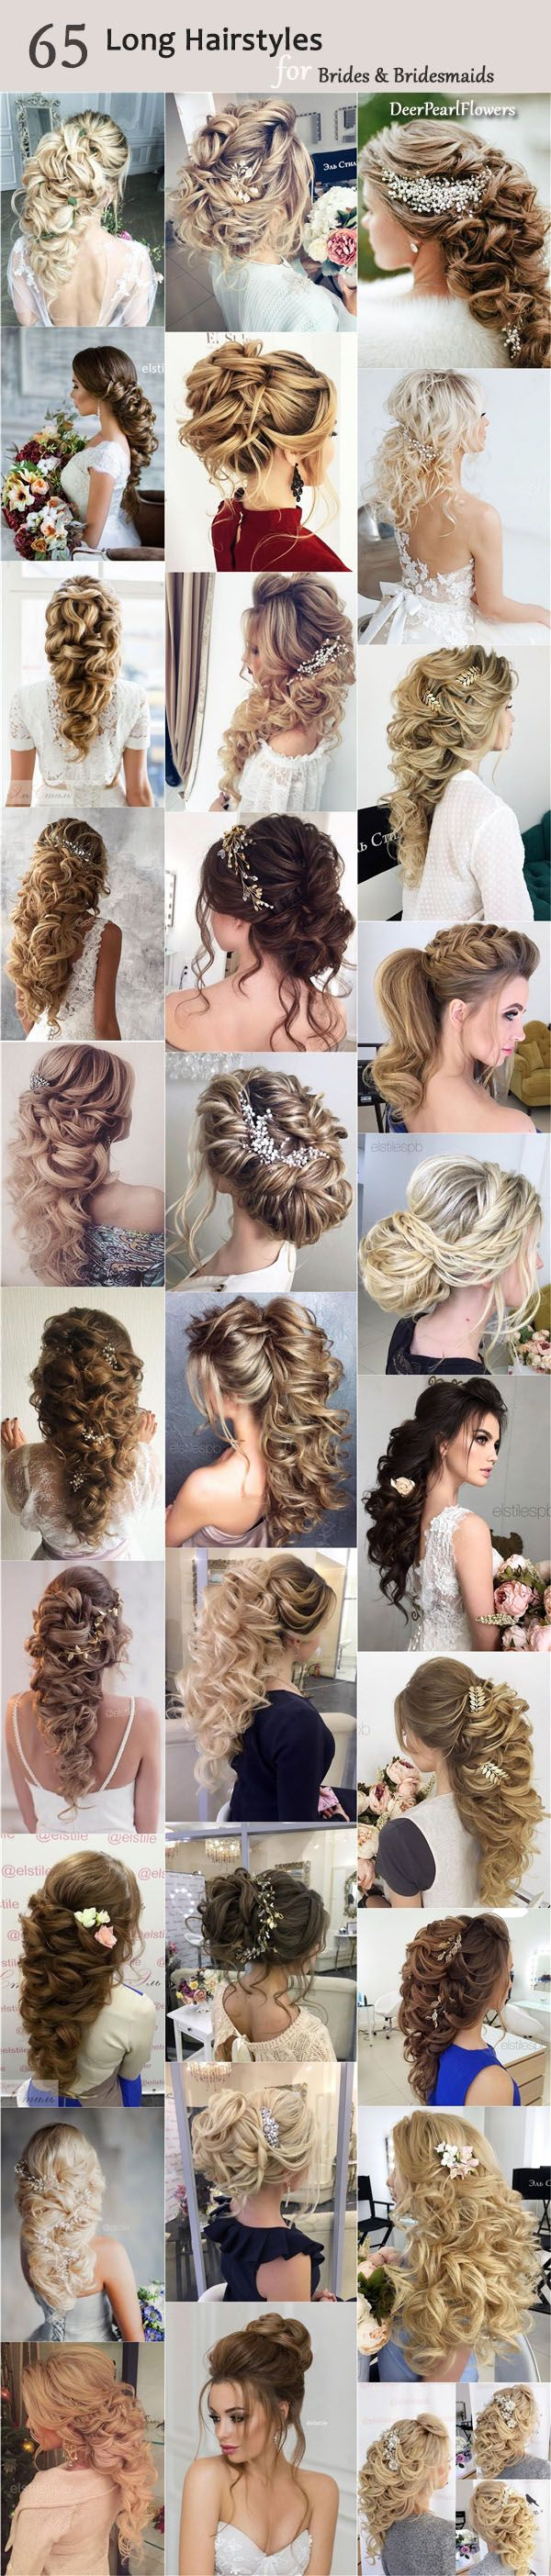 www.deerpearlflowers.com wp-content uploads 2017 02 Long-Wedding-Bridesmaid-Hairstyles-Bridal-Updos.jpg